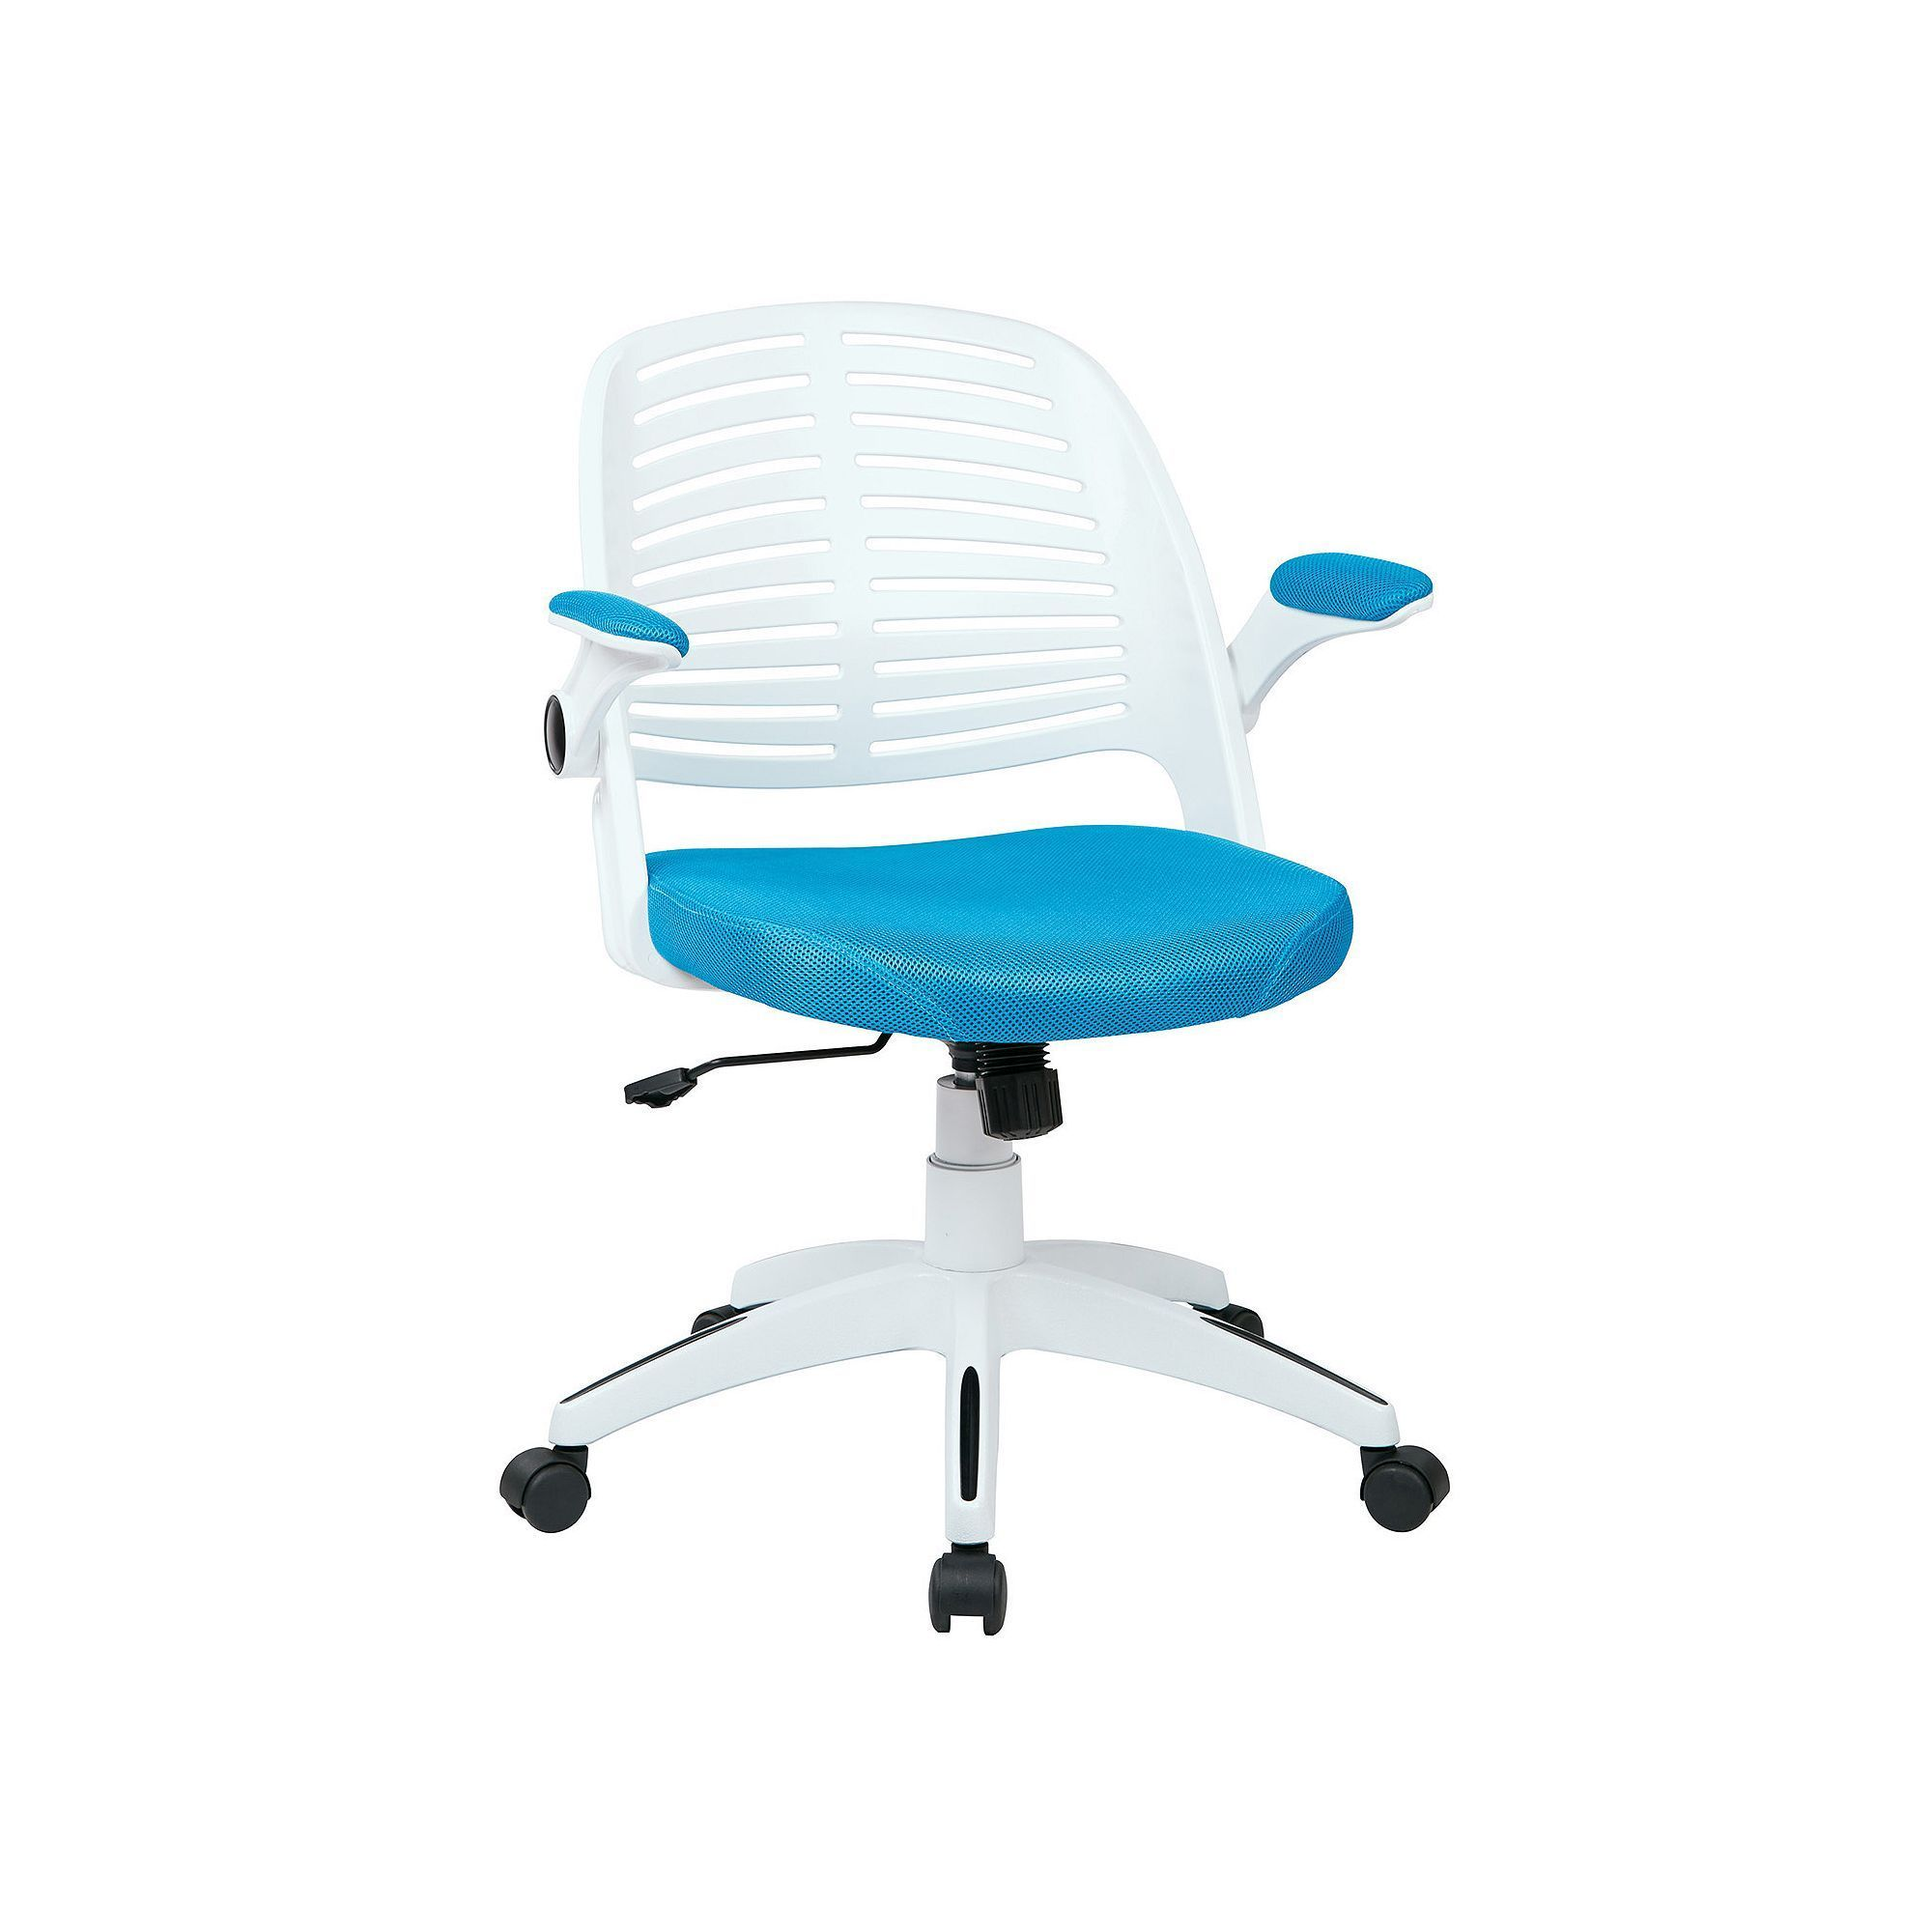 Ave six white frame tyler office chair mesh office chair